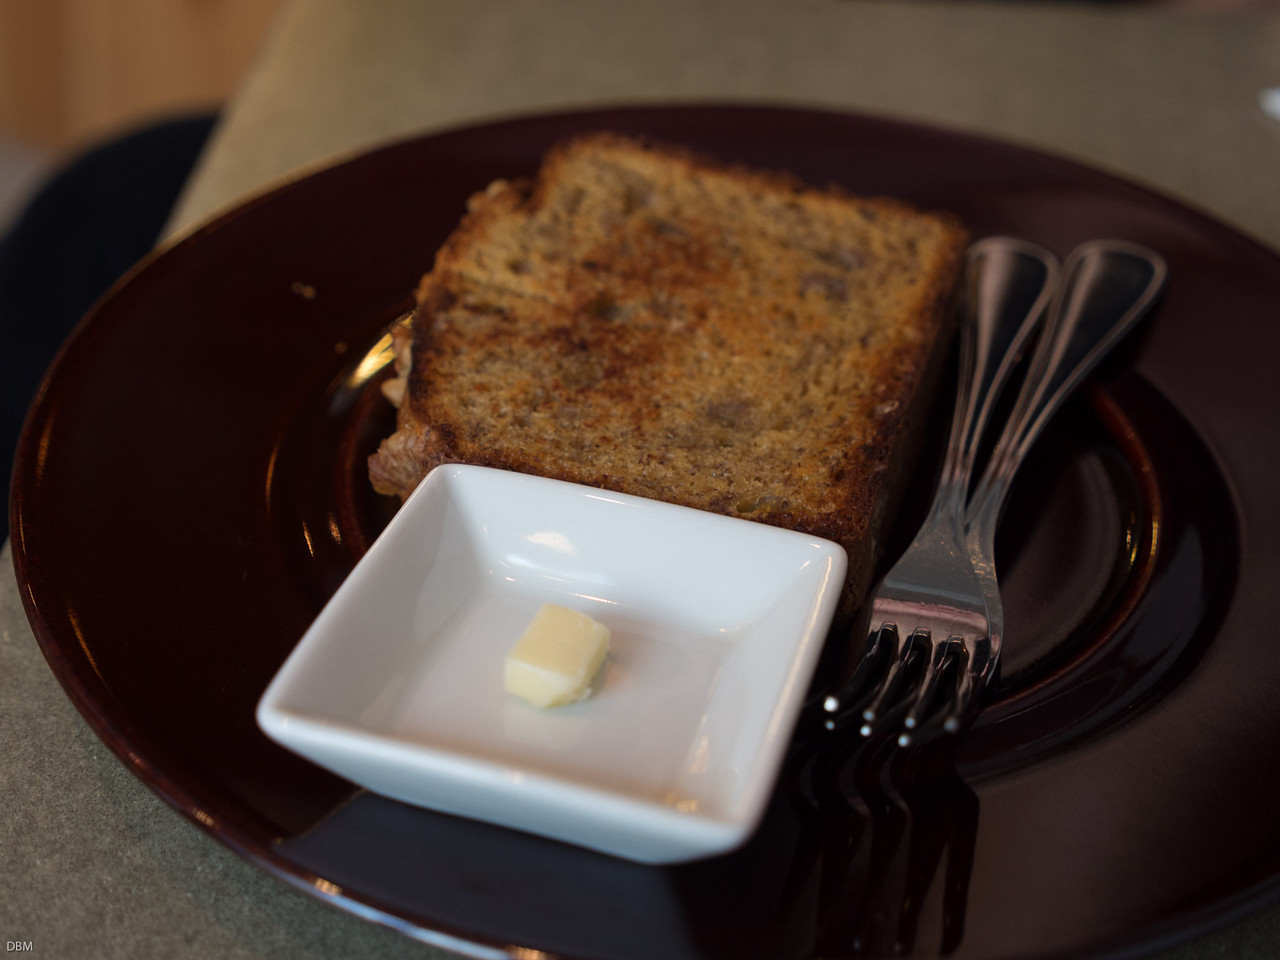 Banana Bread at the Aussie style cafe owned by a woman who studied in Oz, But look at the serve of butter! No wonder they are healthy.